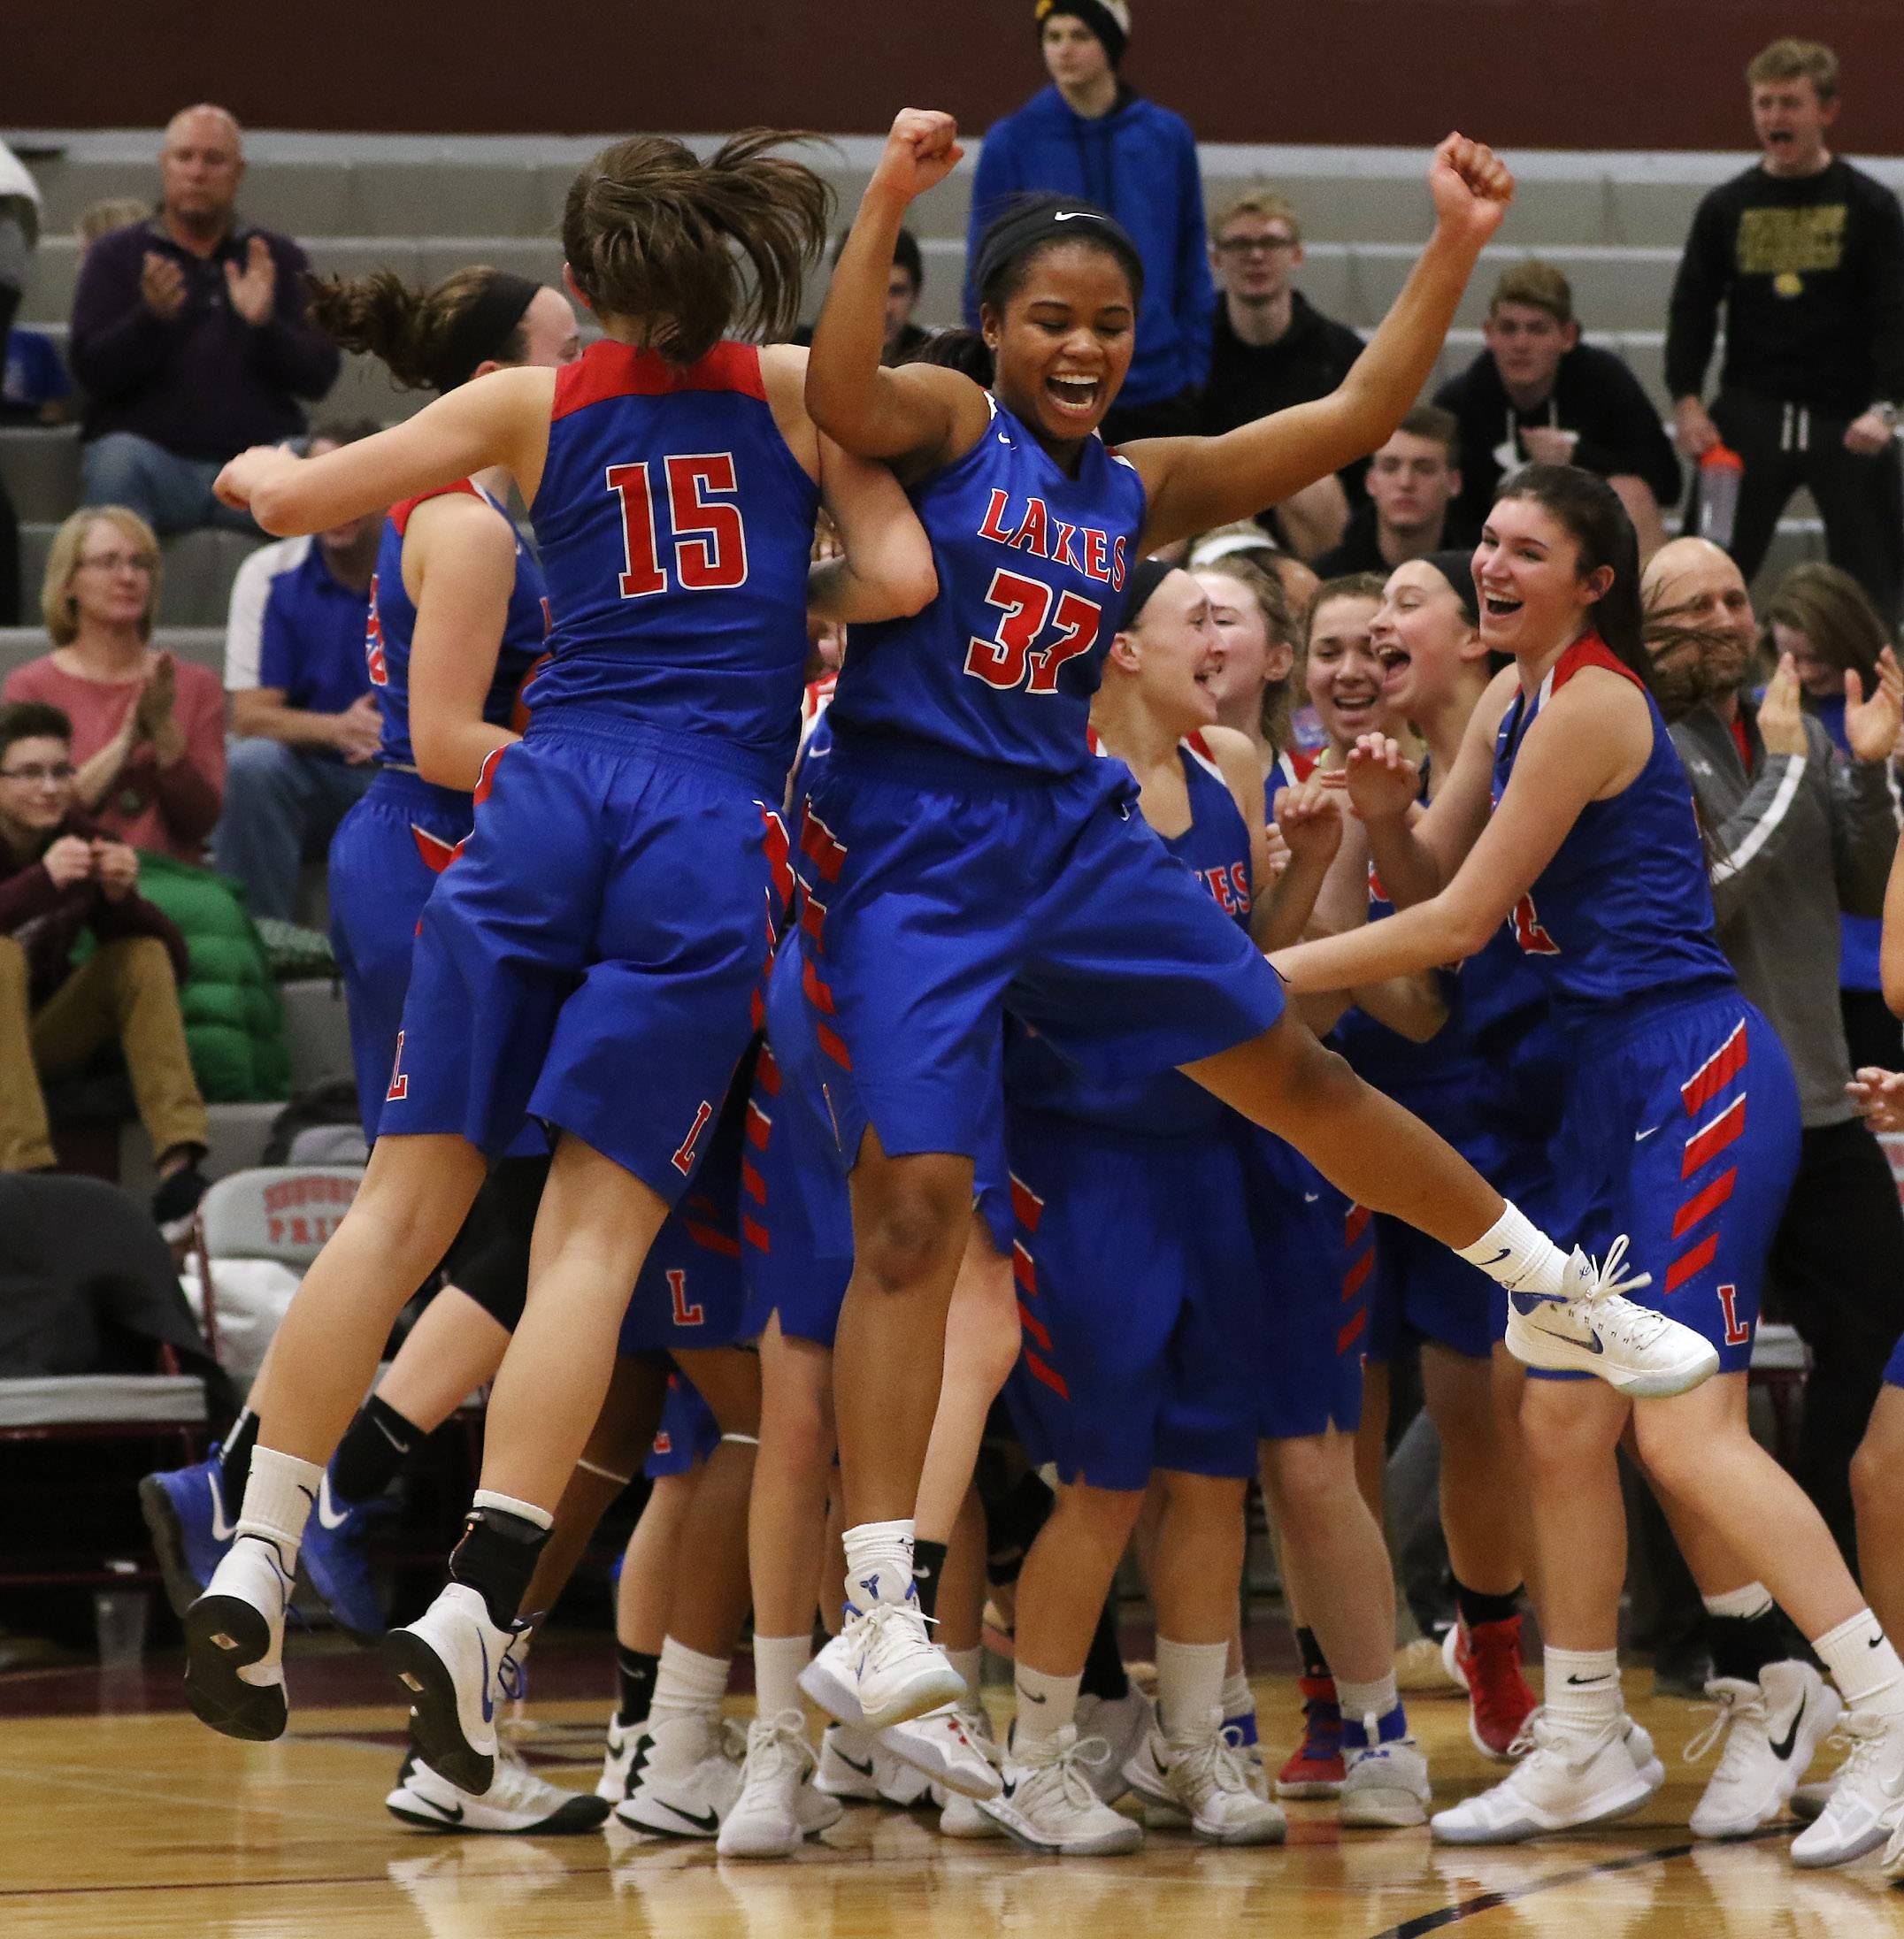 Lakes players Sara Smith, left, bumps with Brittany Washington as they celebrate their victory. Lakes won the game 46 - 38.